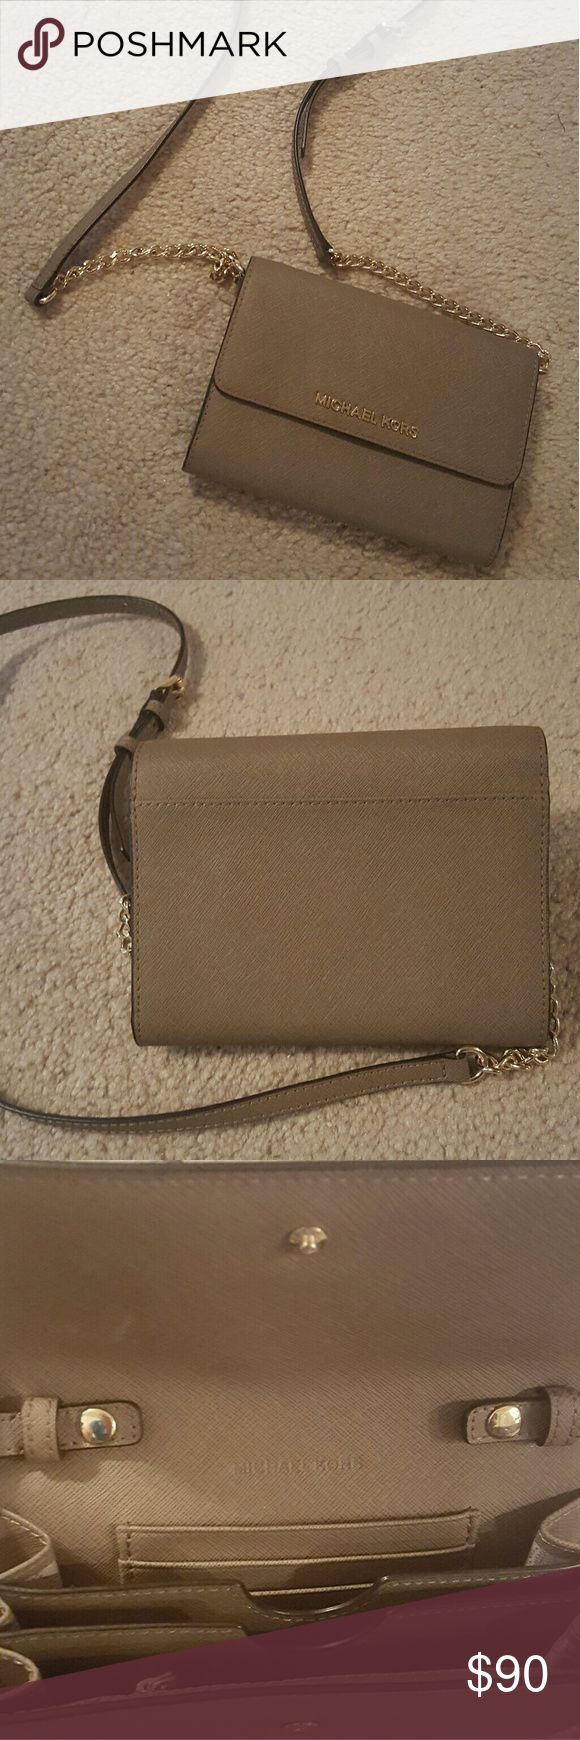 Michael Kors new clutch wallet with chain Clutch with removable wallet is super versatile. Take off the straps and use as a wallet or use it cross body when going out at night! Convenient sloths for credit cards, cash, your phone and even some lip gloss! Never been used. Michael Kors Bags Clutches & Wristlets